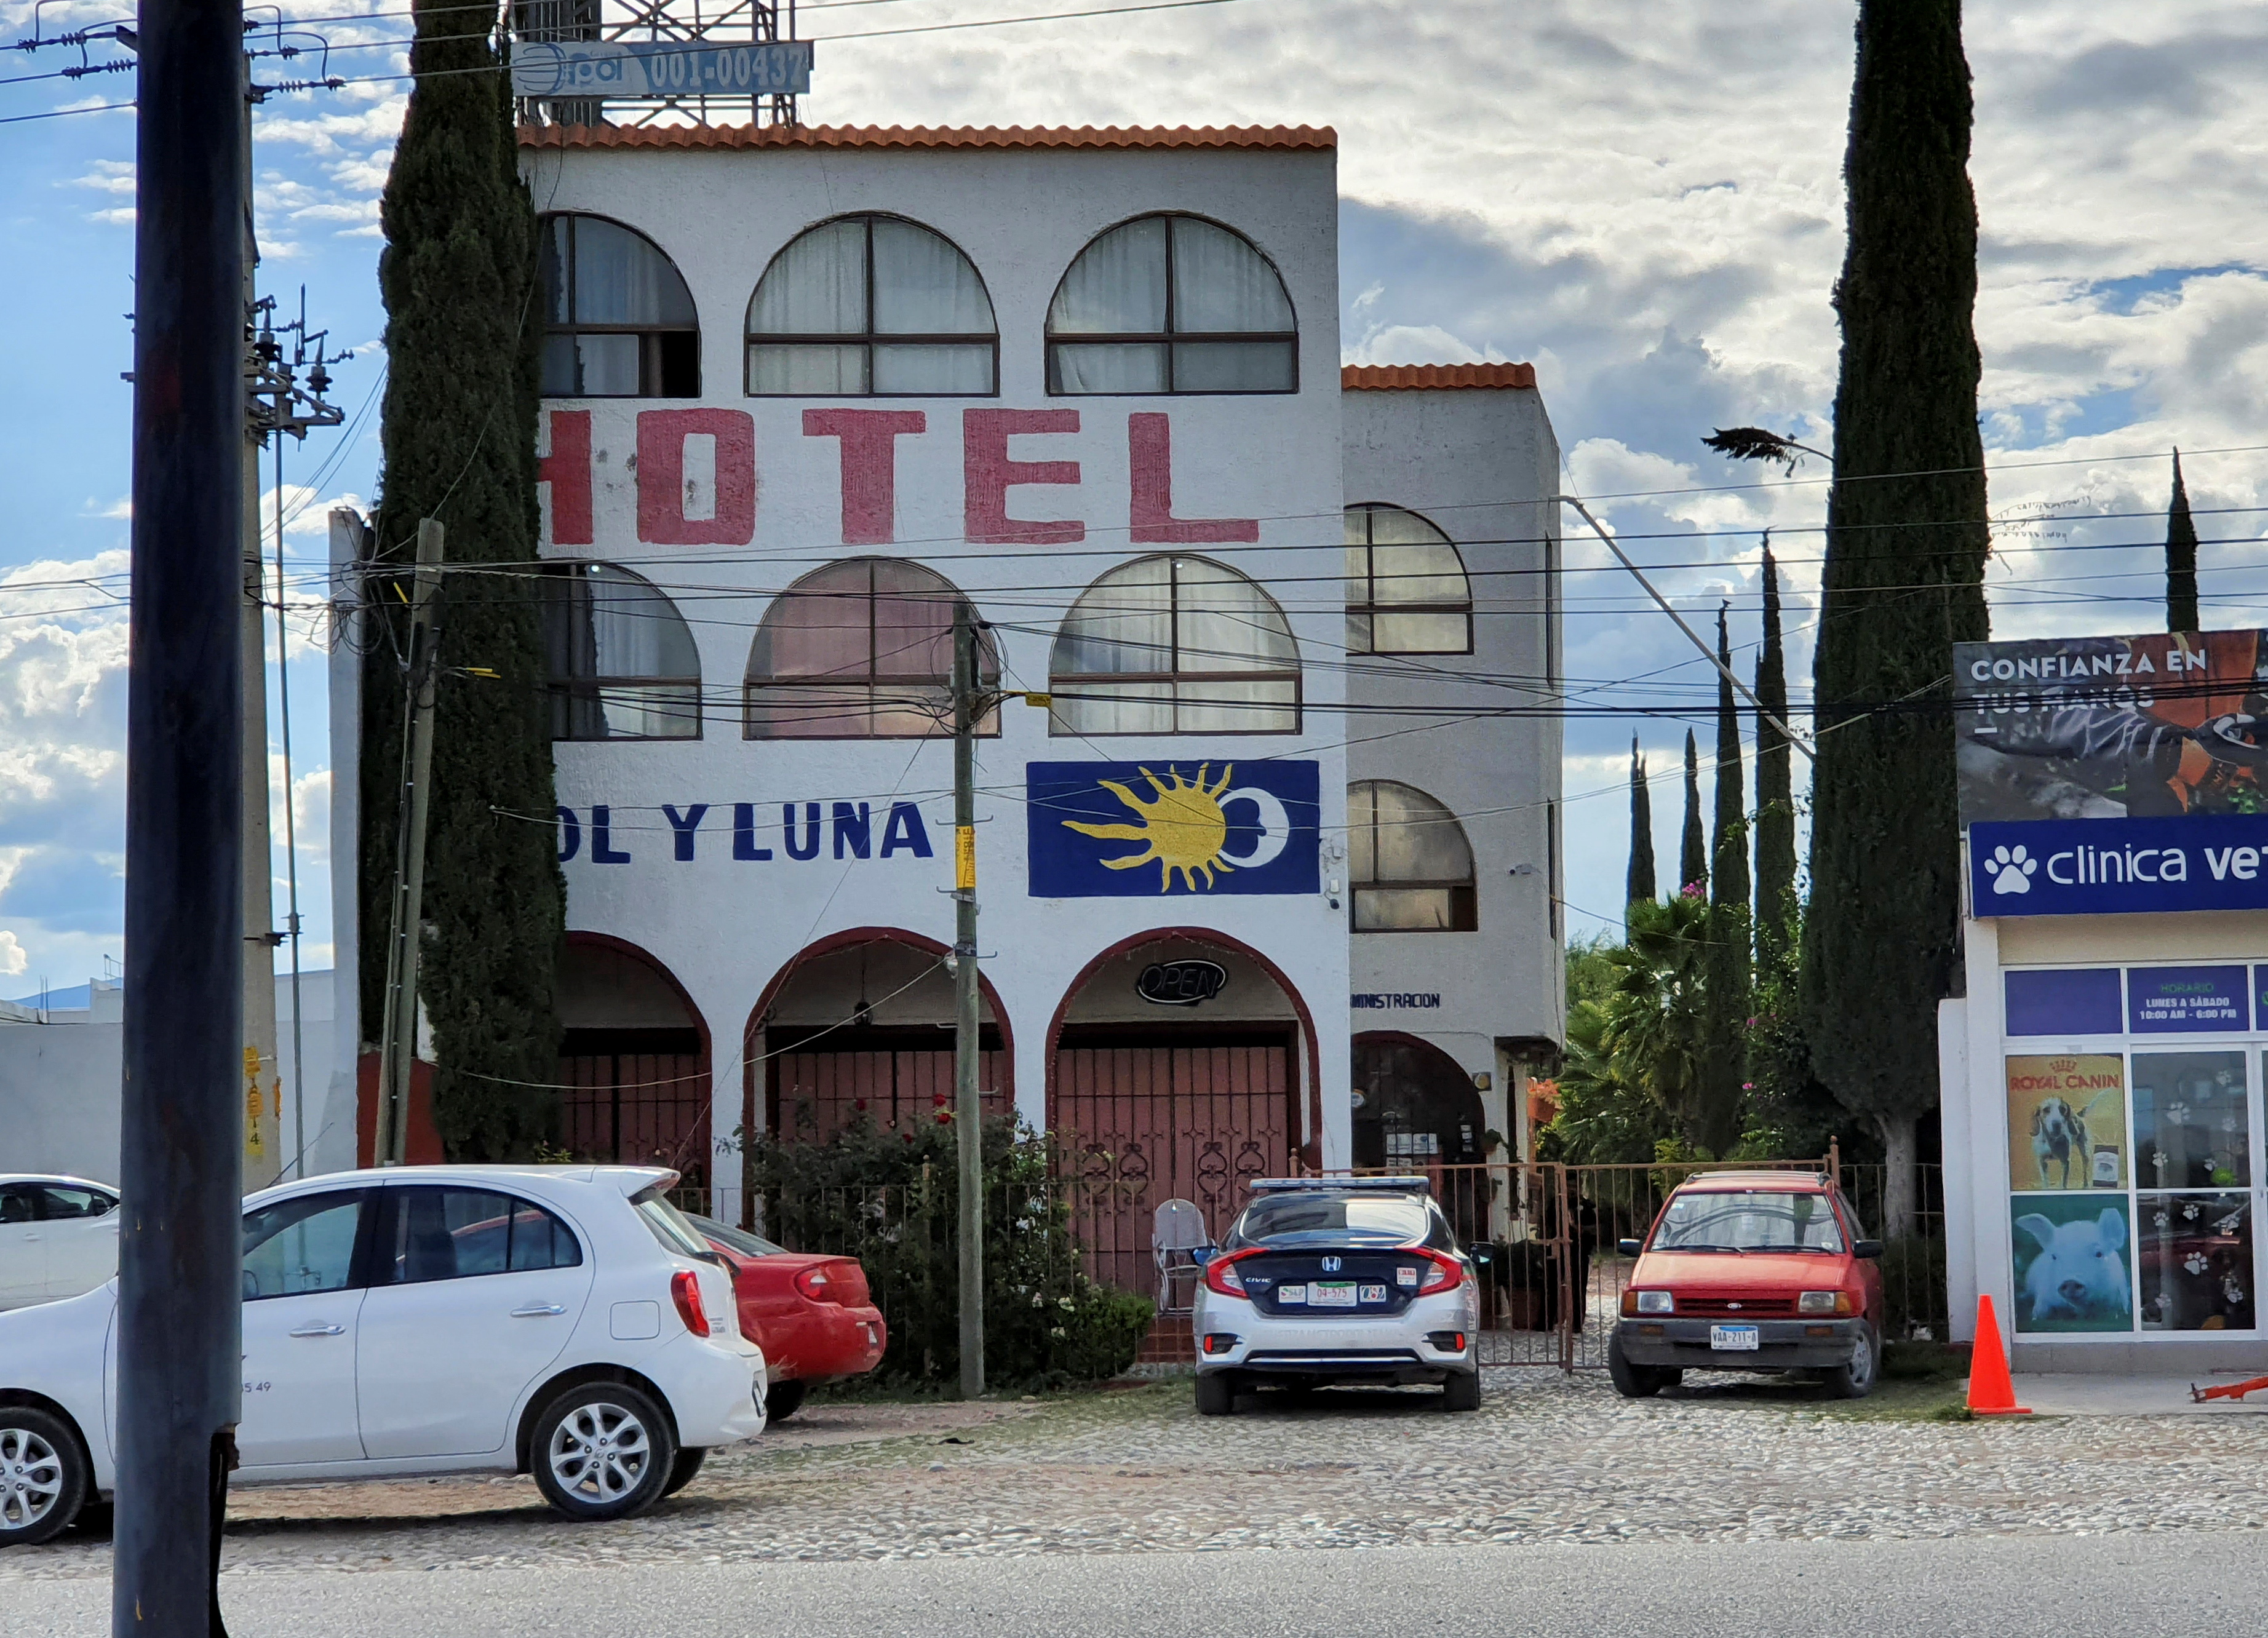 A police patrol car is parked outside the Sol y Luna hotel after gunmen stormed the hotel and kidnapped some 20 foreigners believed to be mostly from Haiti and Venezuela, according to state's attorney general office, in Matehuala, in San Luis Potosi state, Mexico September 14, 2021. REUTERS/Stringer